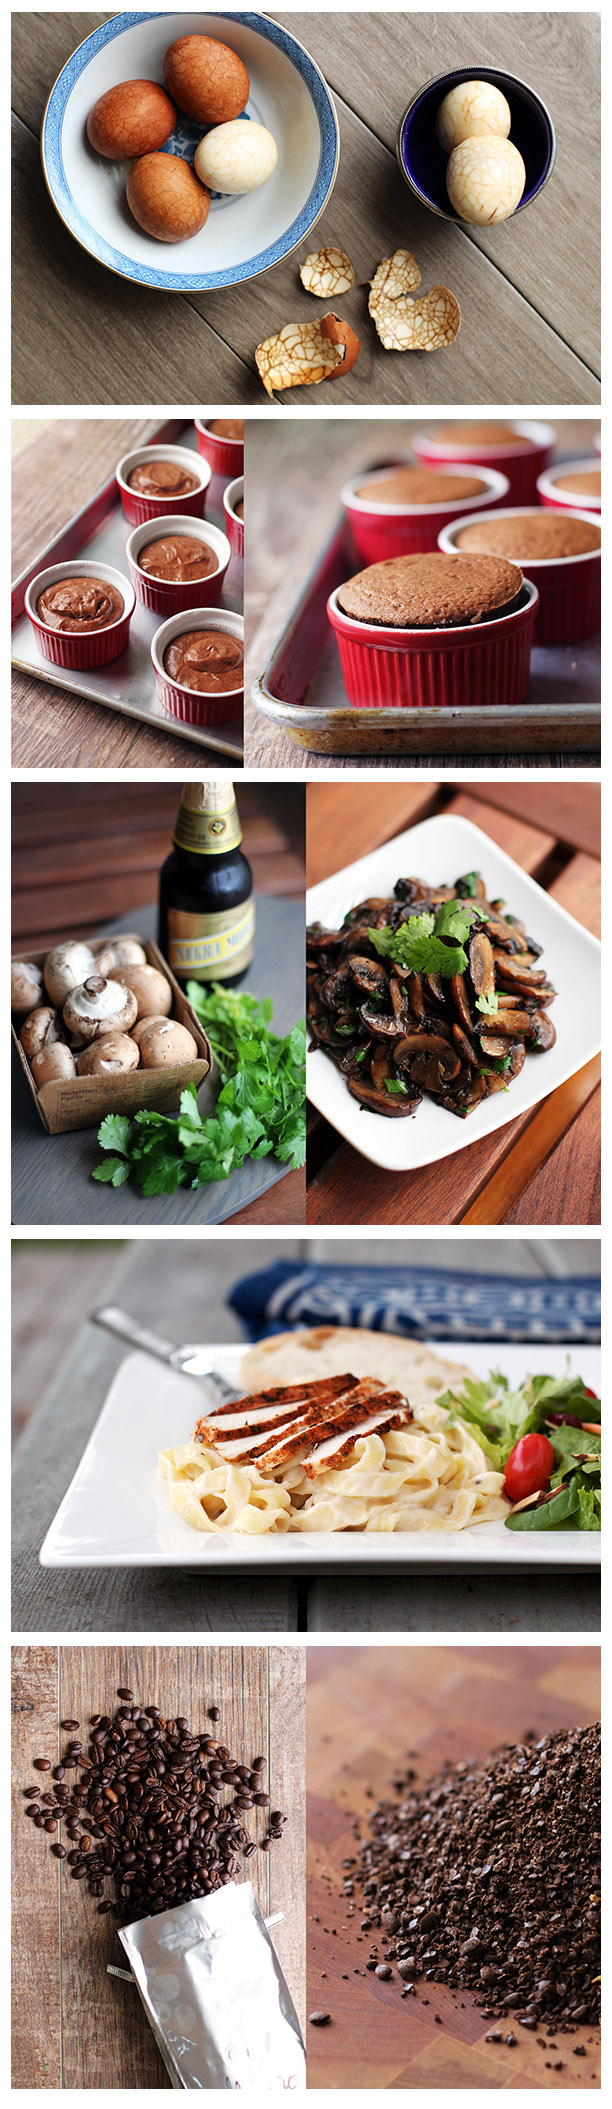 food photog samples.jpg